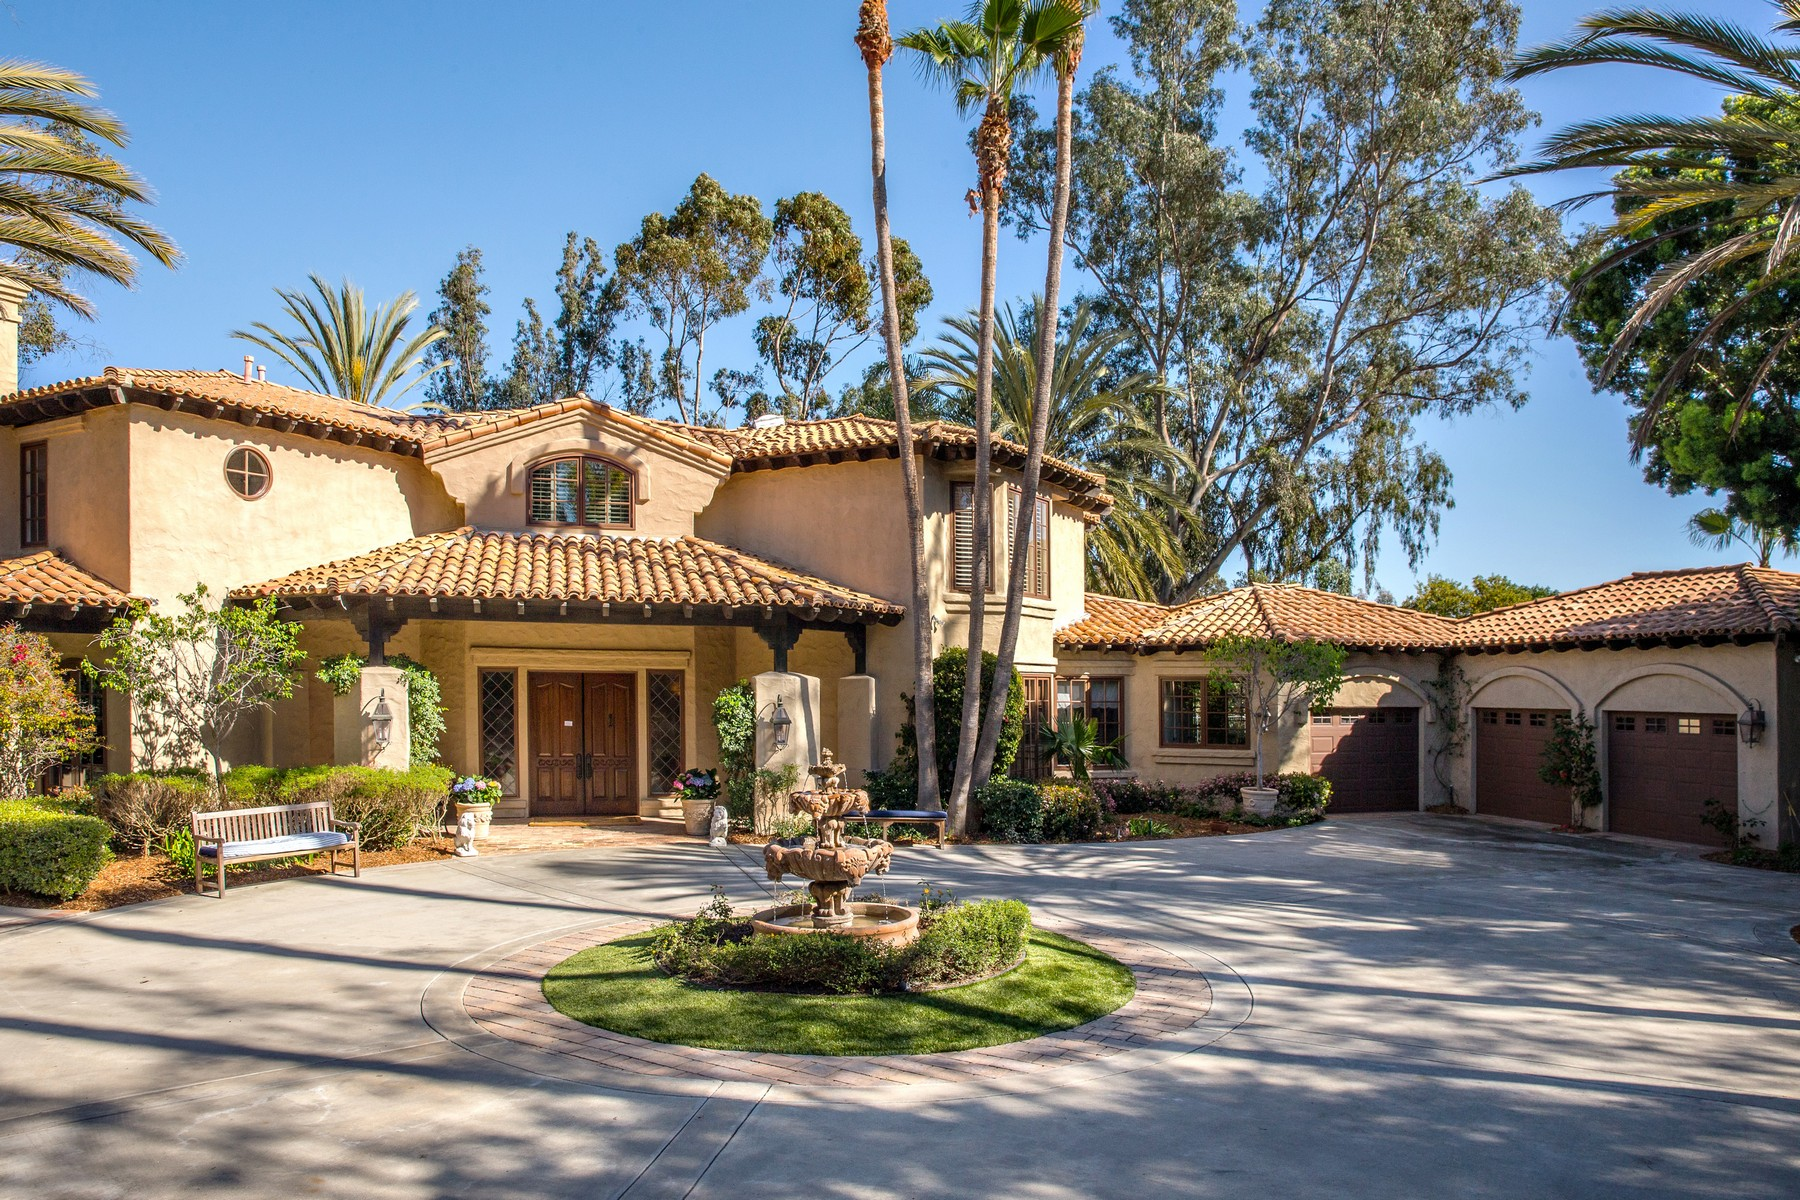 Additional photo for property listing at 5445 Calzada Del Bosque  Rancho Santa Fe, California 92067 Estados Unidos